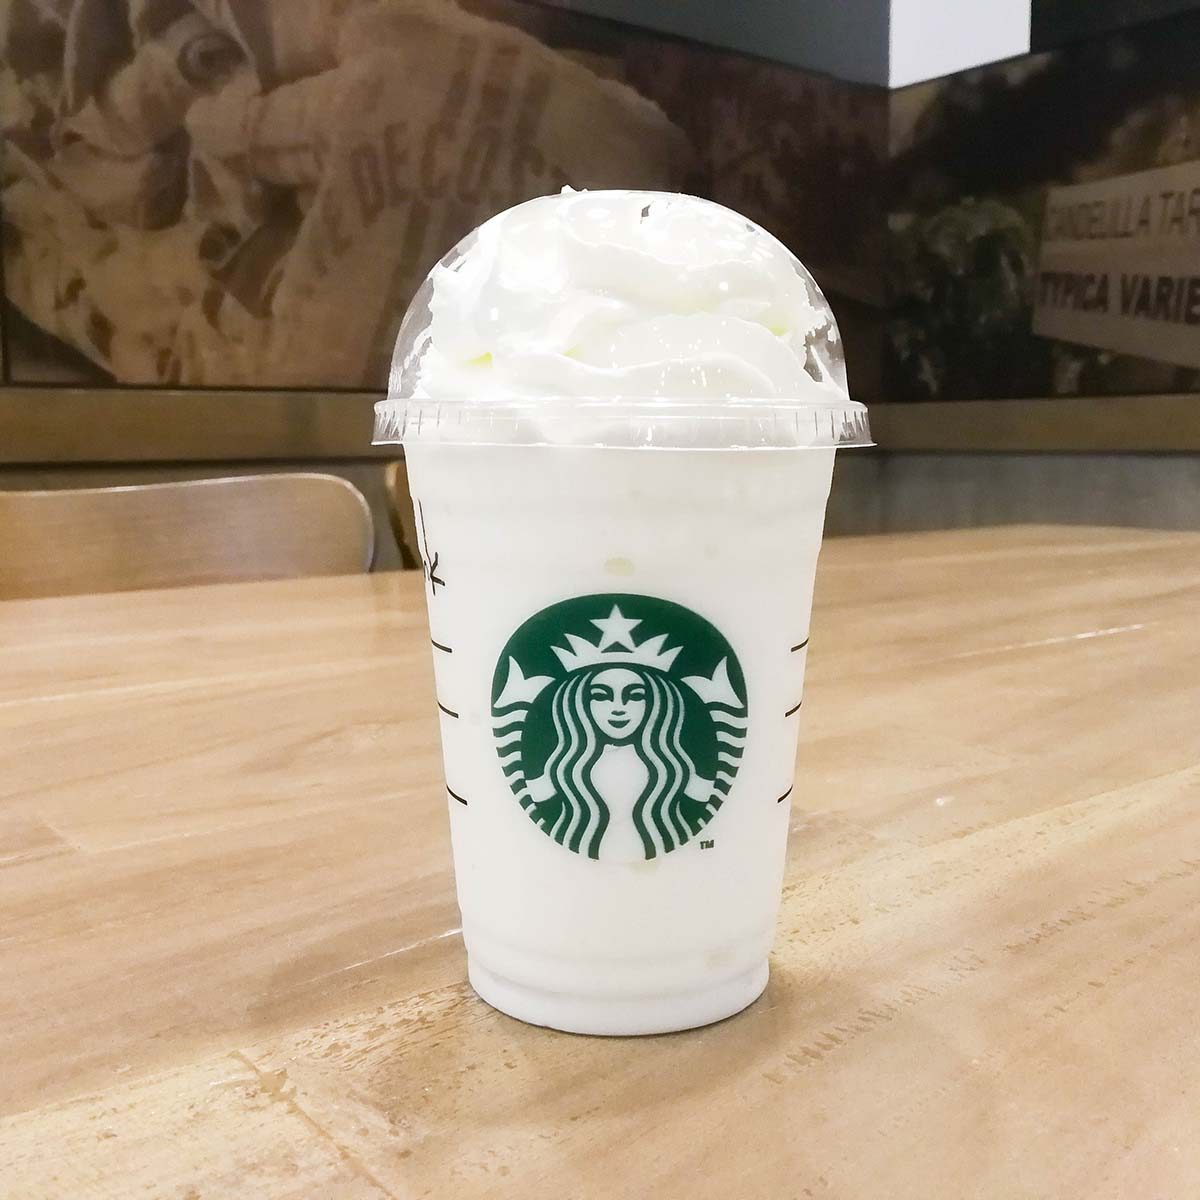 A cup of Starbucks coffee blended beverages, Vanilla bean frappuccino